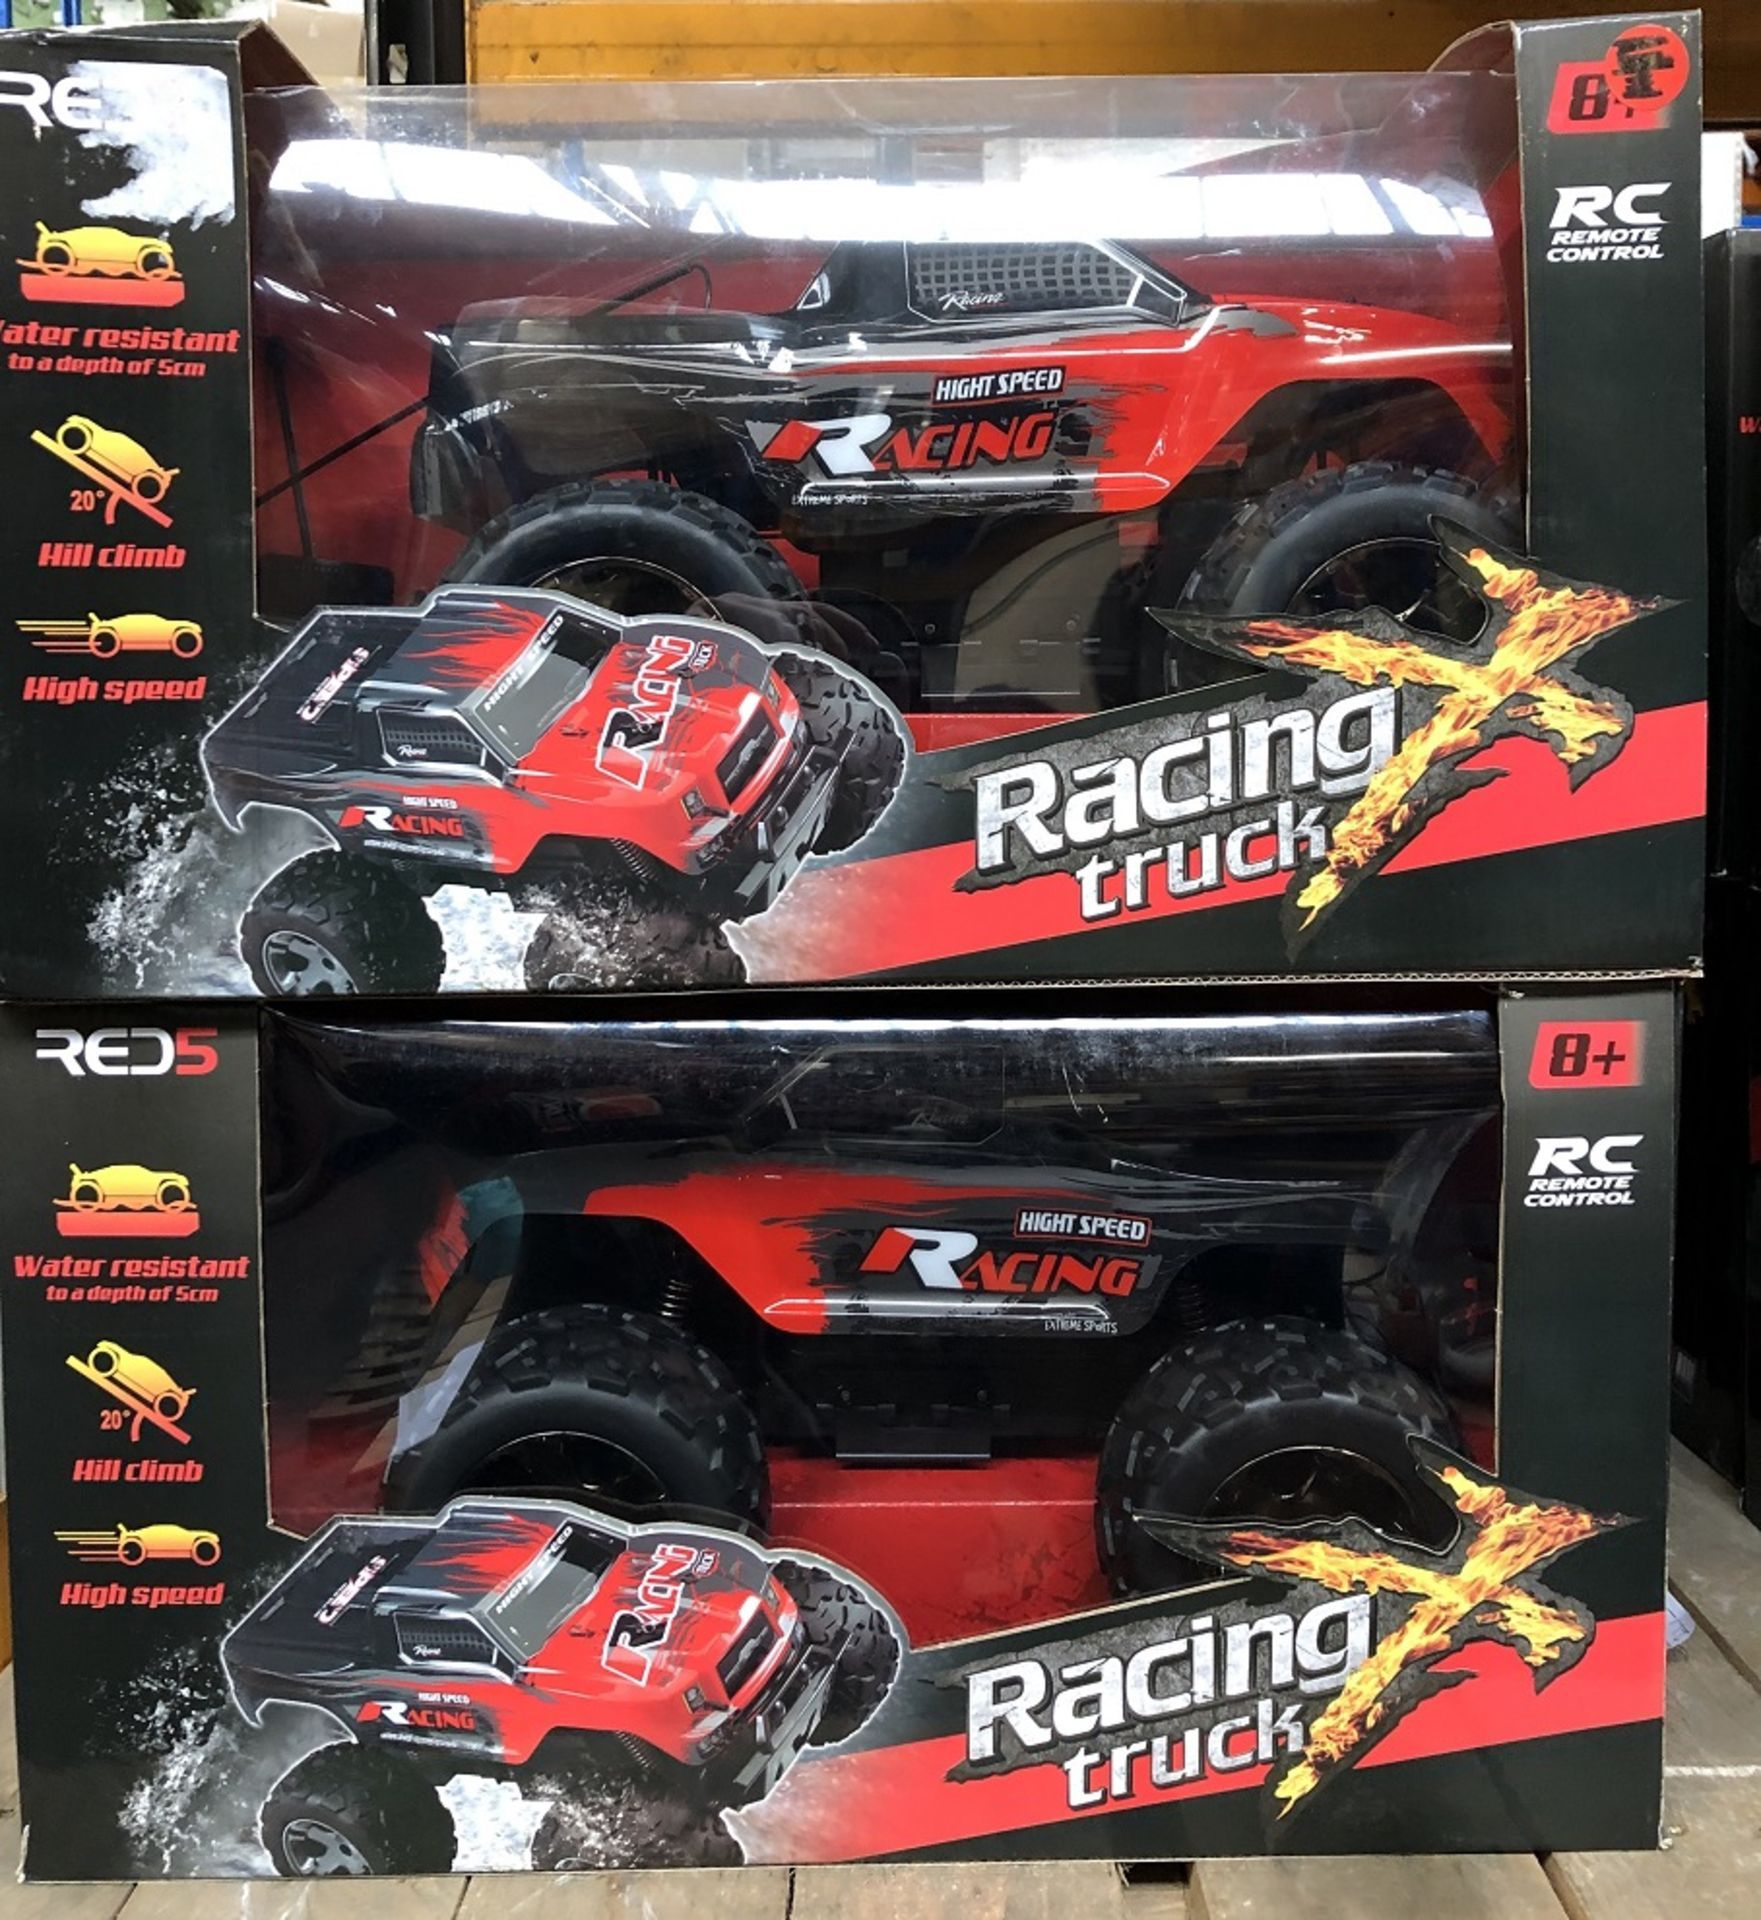 5 x Remote Control Racing Trucks - Red/Black / Rrp £300.00 / Untested Customer Returns